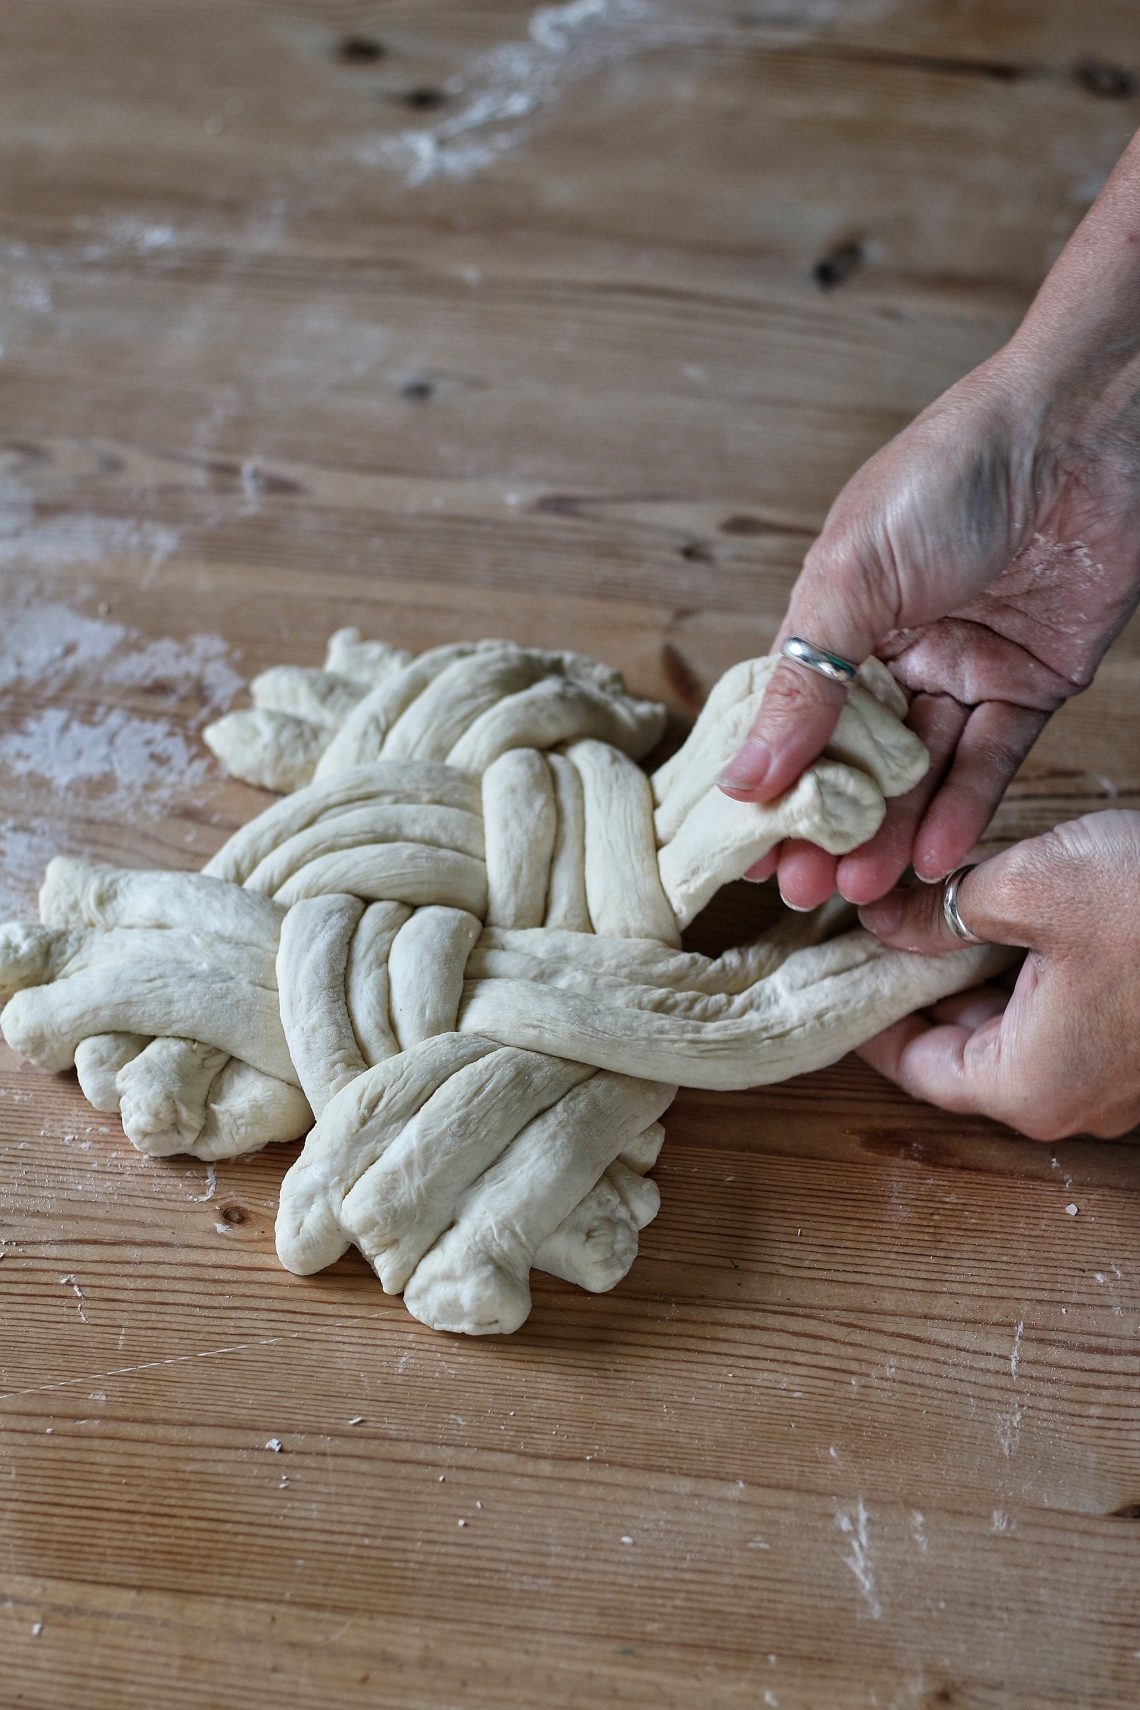 The stages of braiding a ball plait loaf by Ink Sugar Spice